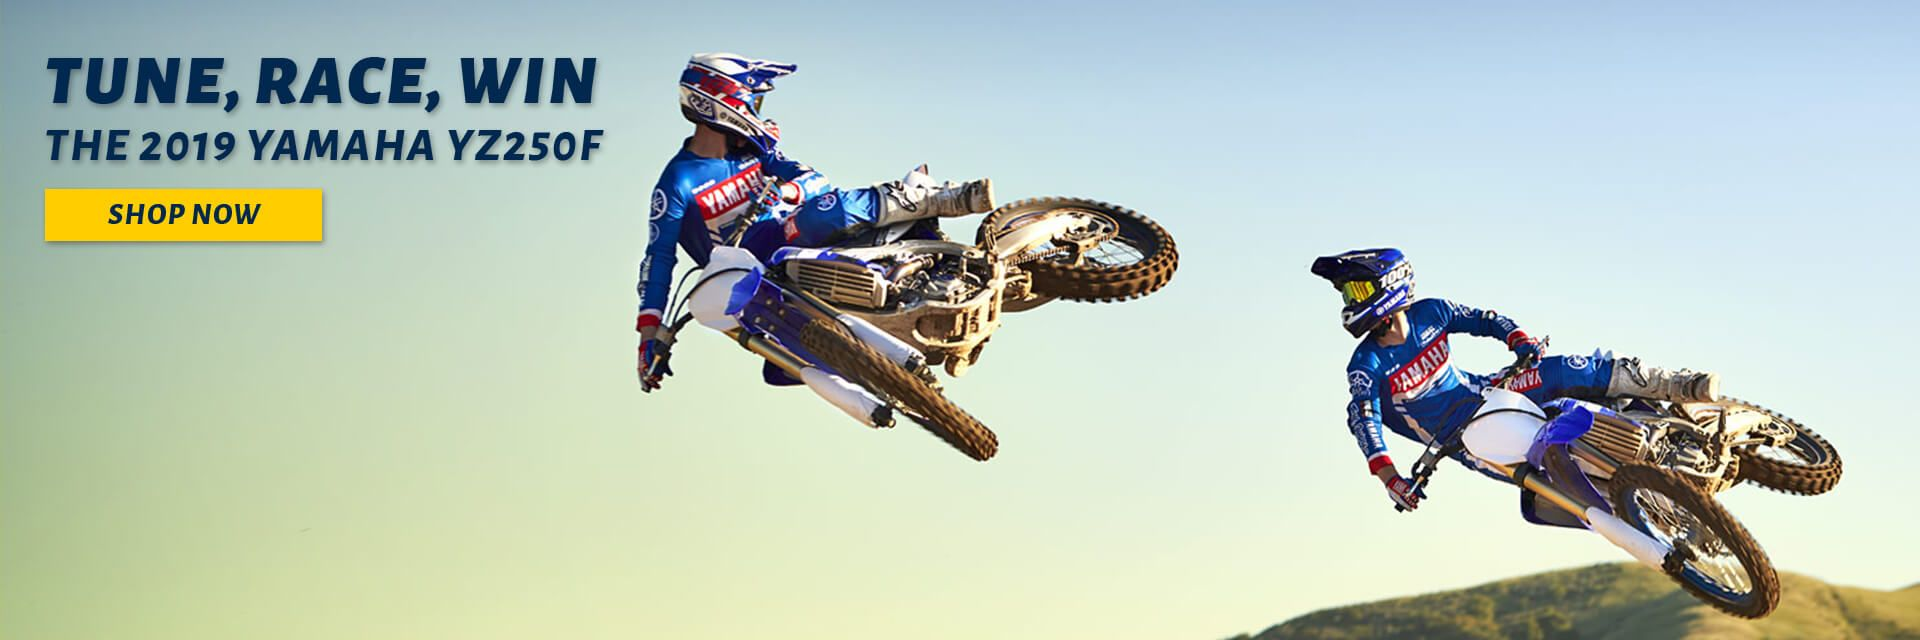 Shop Yamaha YZ250F Dirt Bikes For Sale at Harper Cycle & Marine in Hendersonville, NC